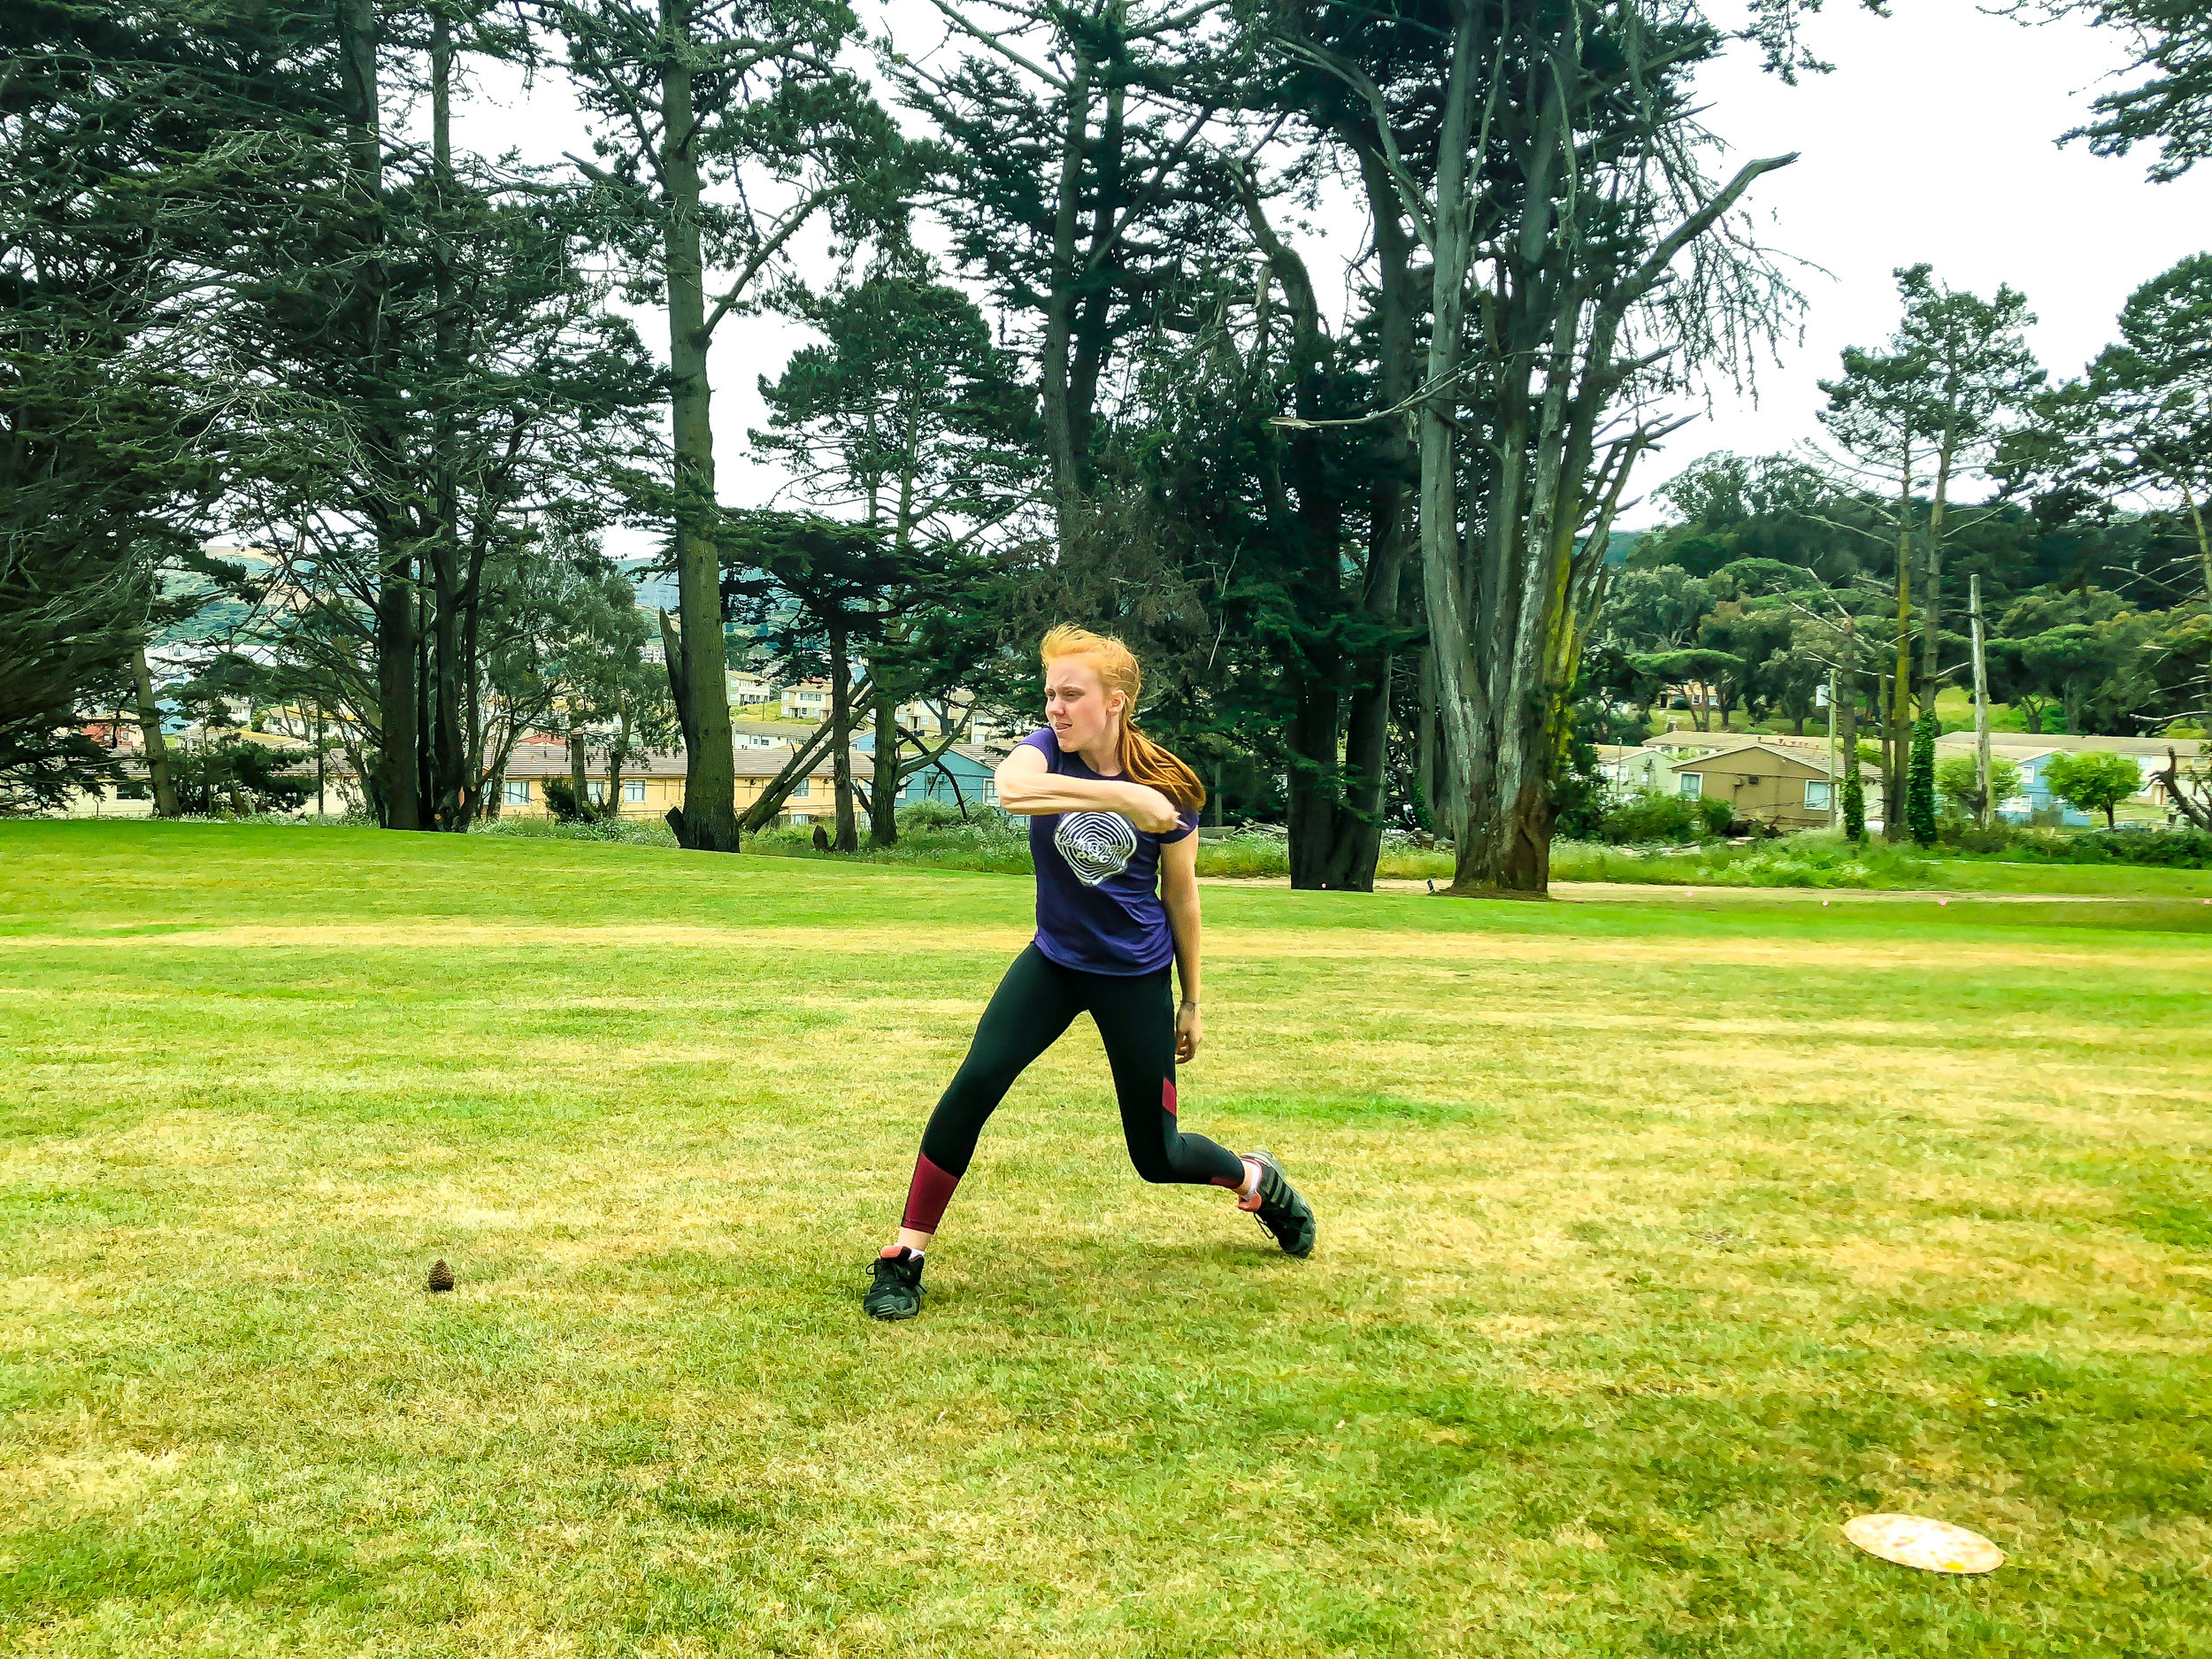 Edie Heard   rips a fairway drive on Gleneagles Hole 10 - one of a few Par 5's at the inaugural San Francisco Open.